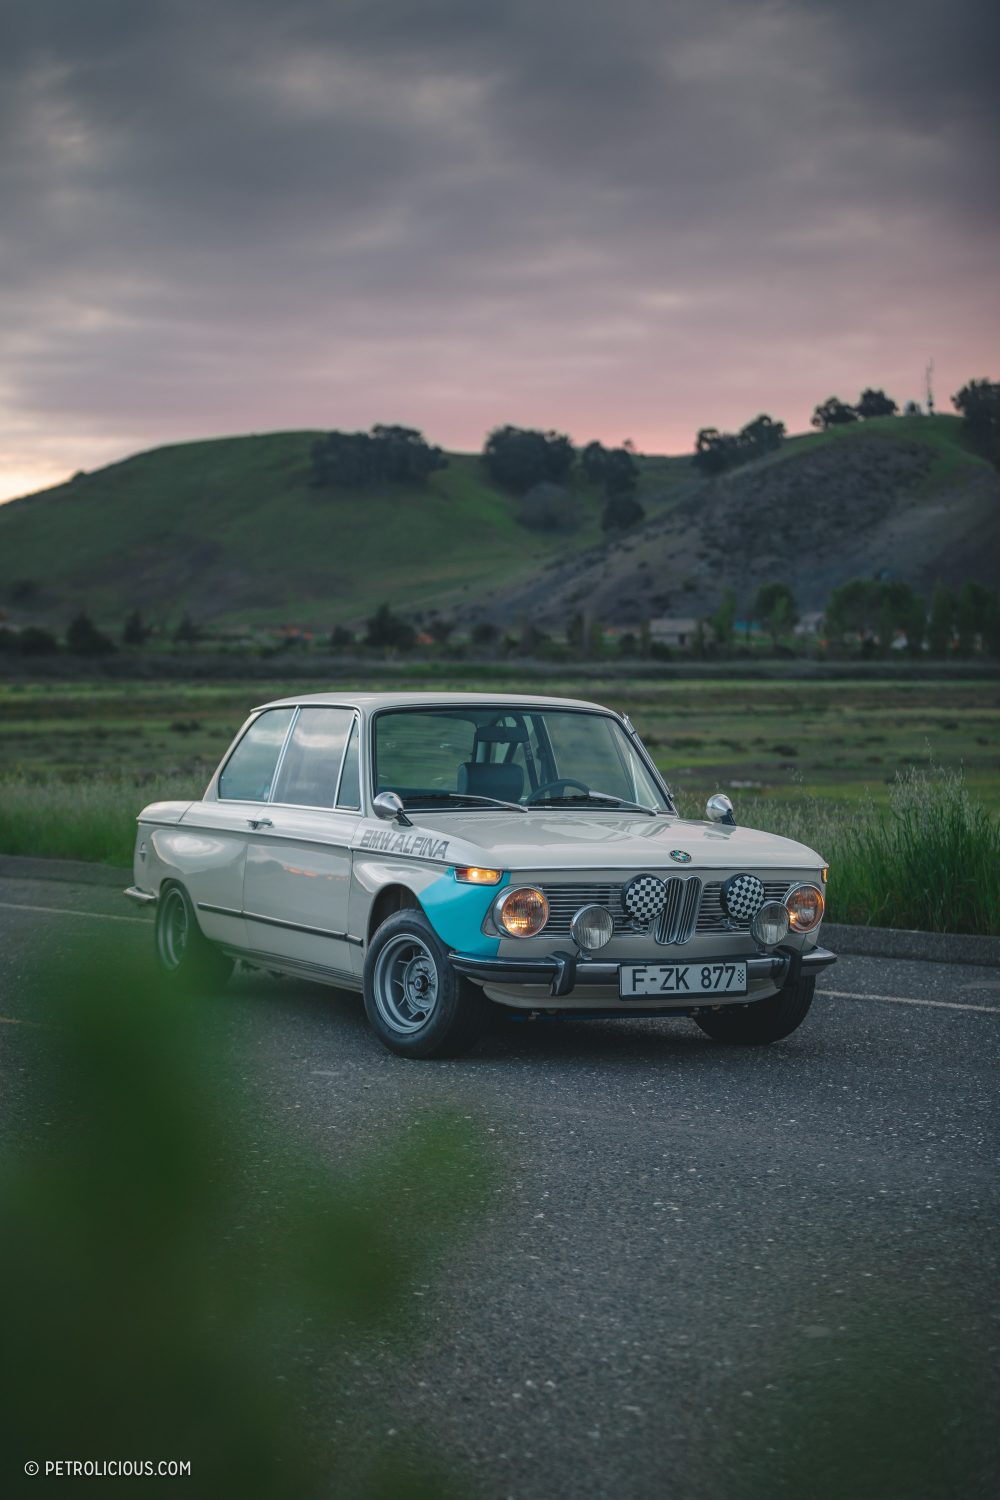 Chasing Momentum With A Bmw 2002 Alpina Tribute Petrolicious